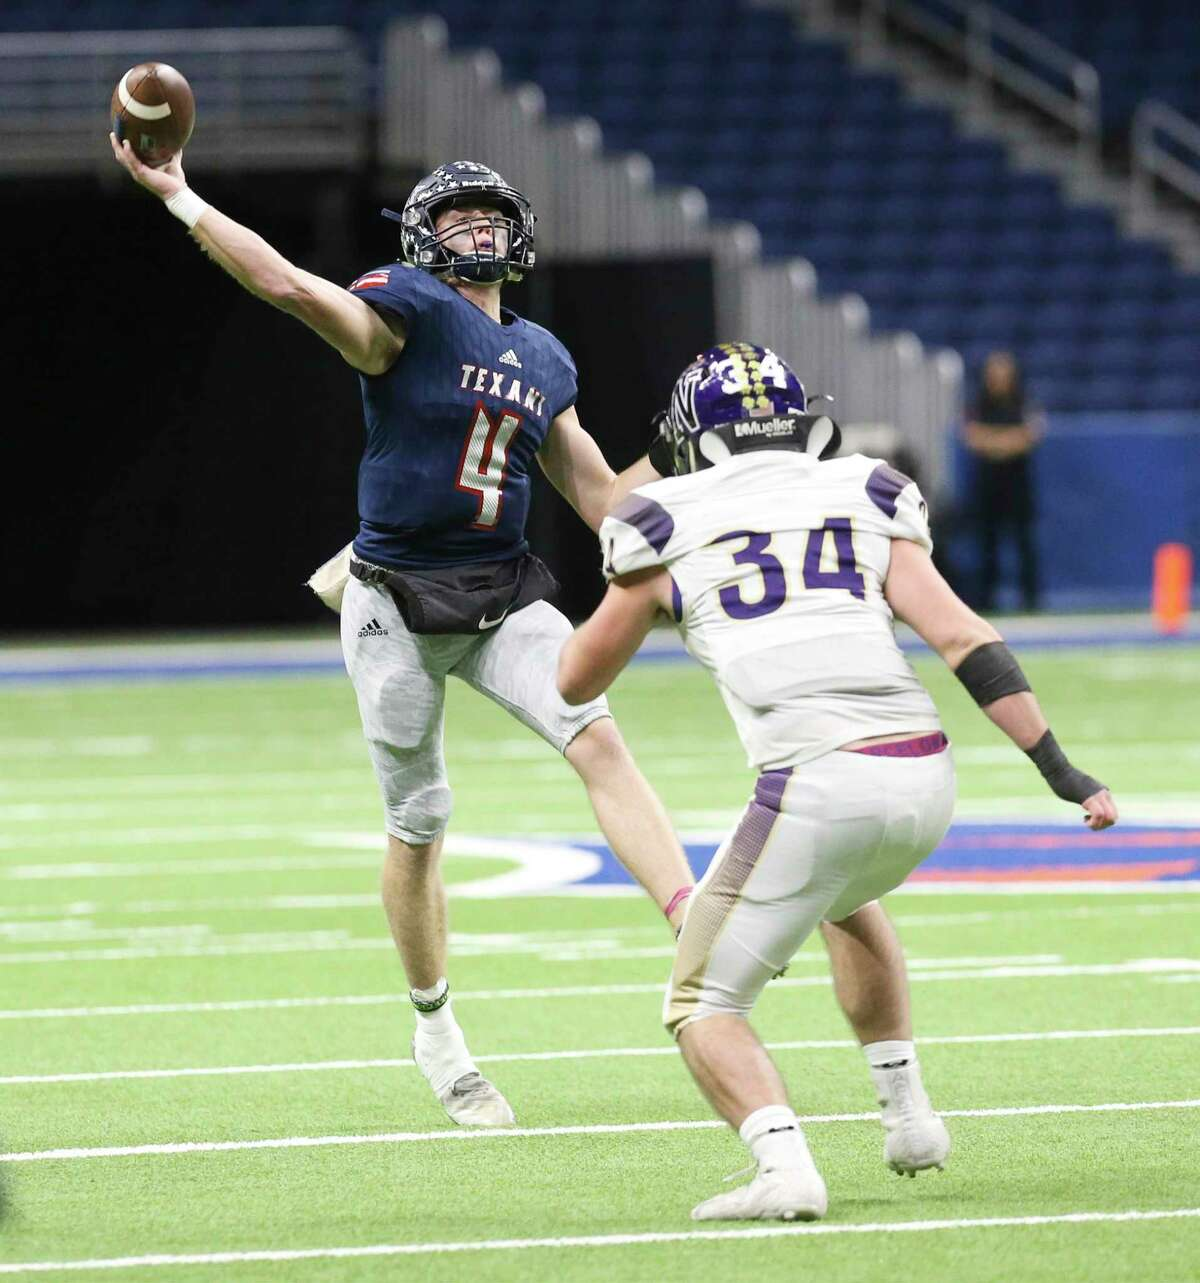 Wimberley quarterback Cooper McCollum (04) throws the ball against Navarro's Gabriel Means (34) during their state quarterfinals football game at the Alamodome on Friday, Dec. 6, 2019.